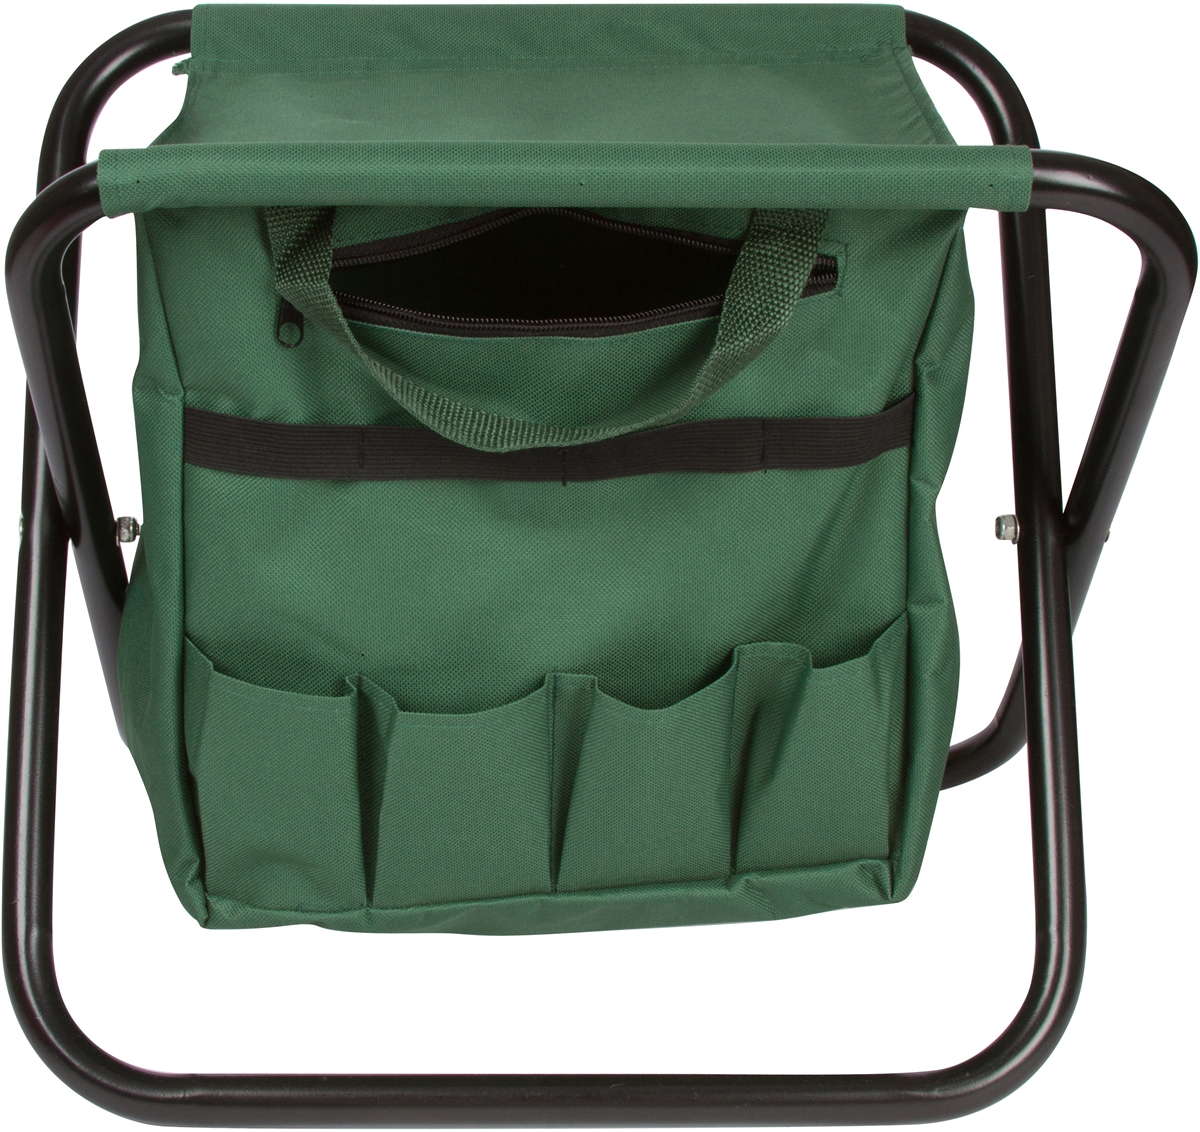 Folding Gardening Stool With Attached Tool Bag By